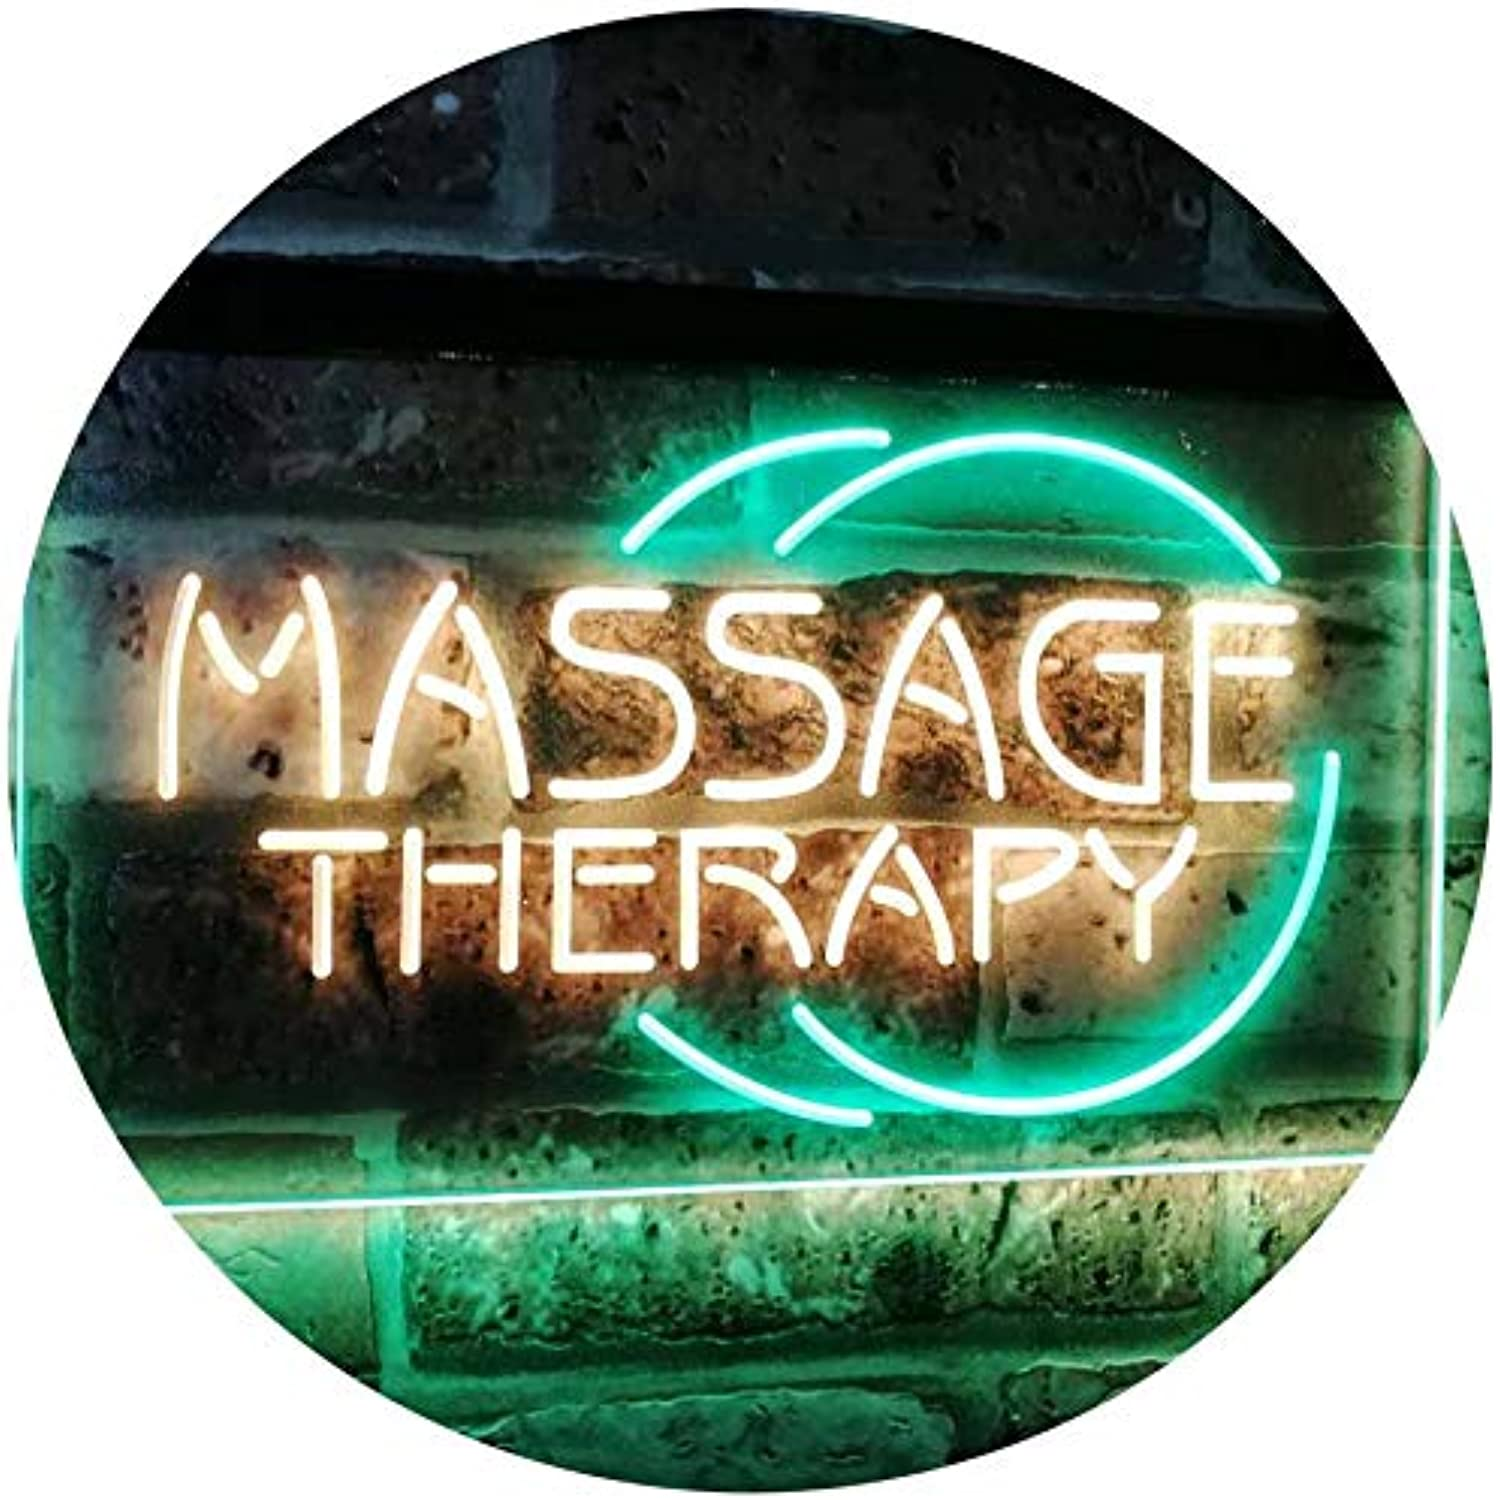 ADVPRO Massage Therapy Business Display Dual Farbe LED Barlicht Neonlicht Lichtwerbung Neon Sign Grün & Gelb 400mm x 300mm st6s43-i0315-gy